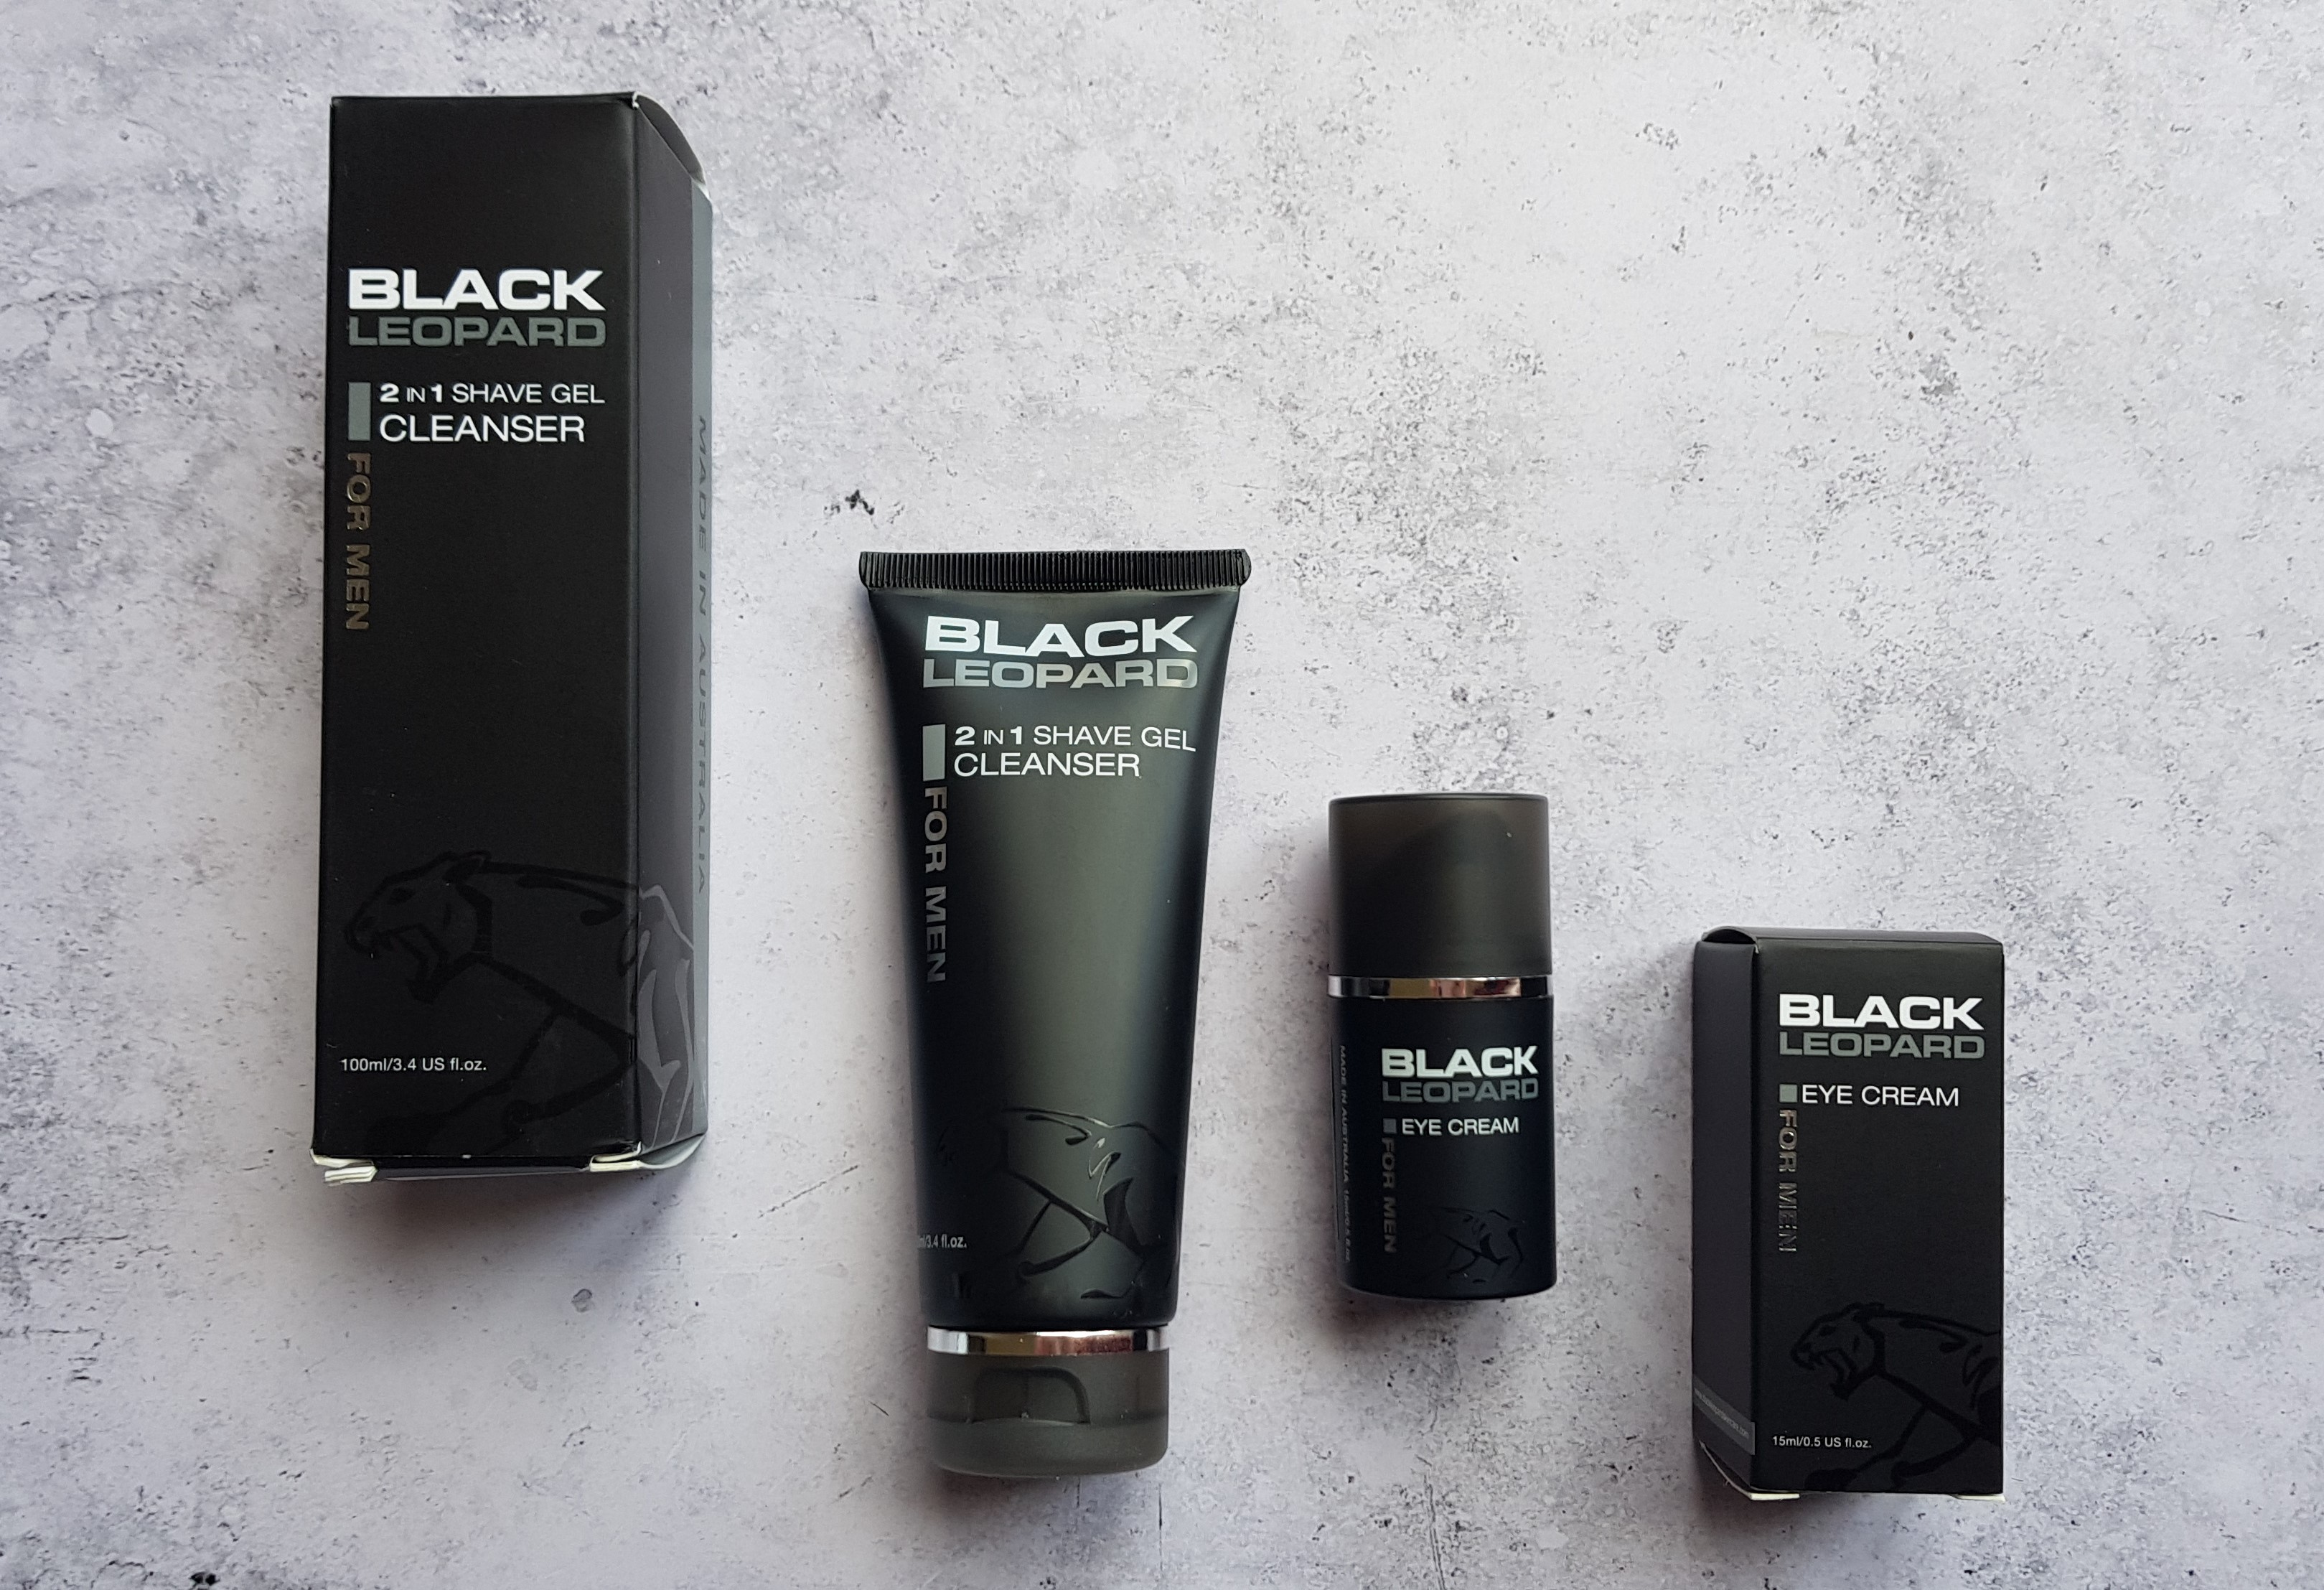 Black Leopard skincare products